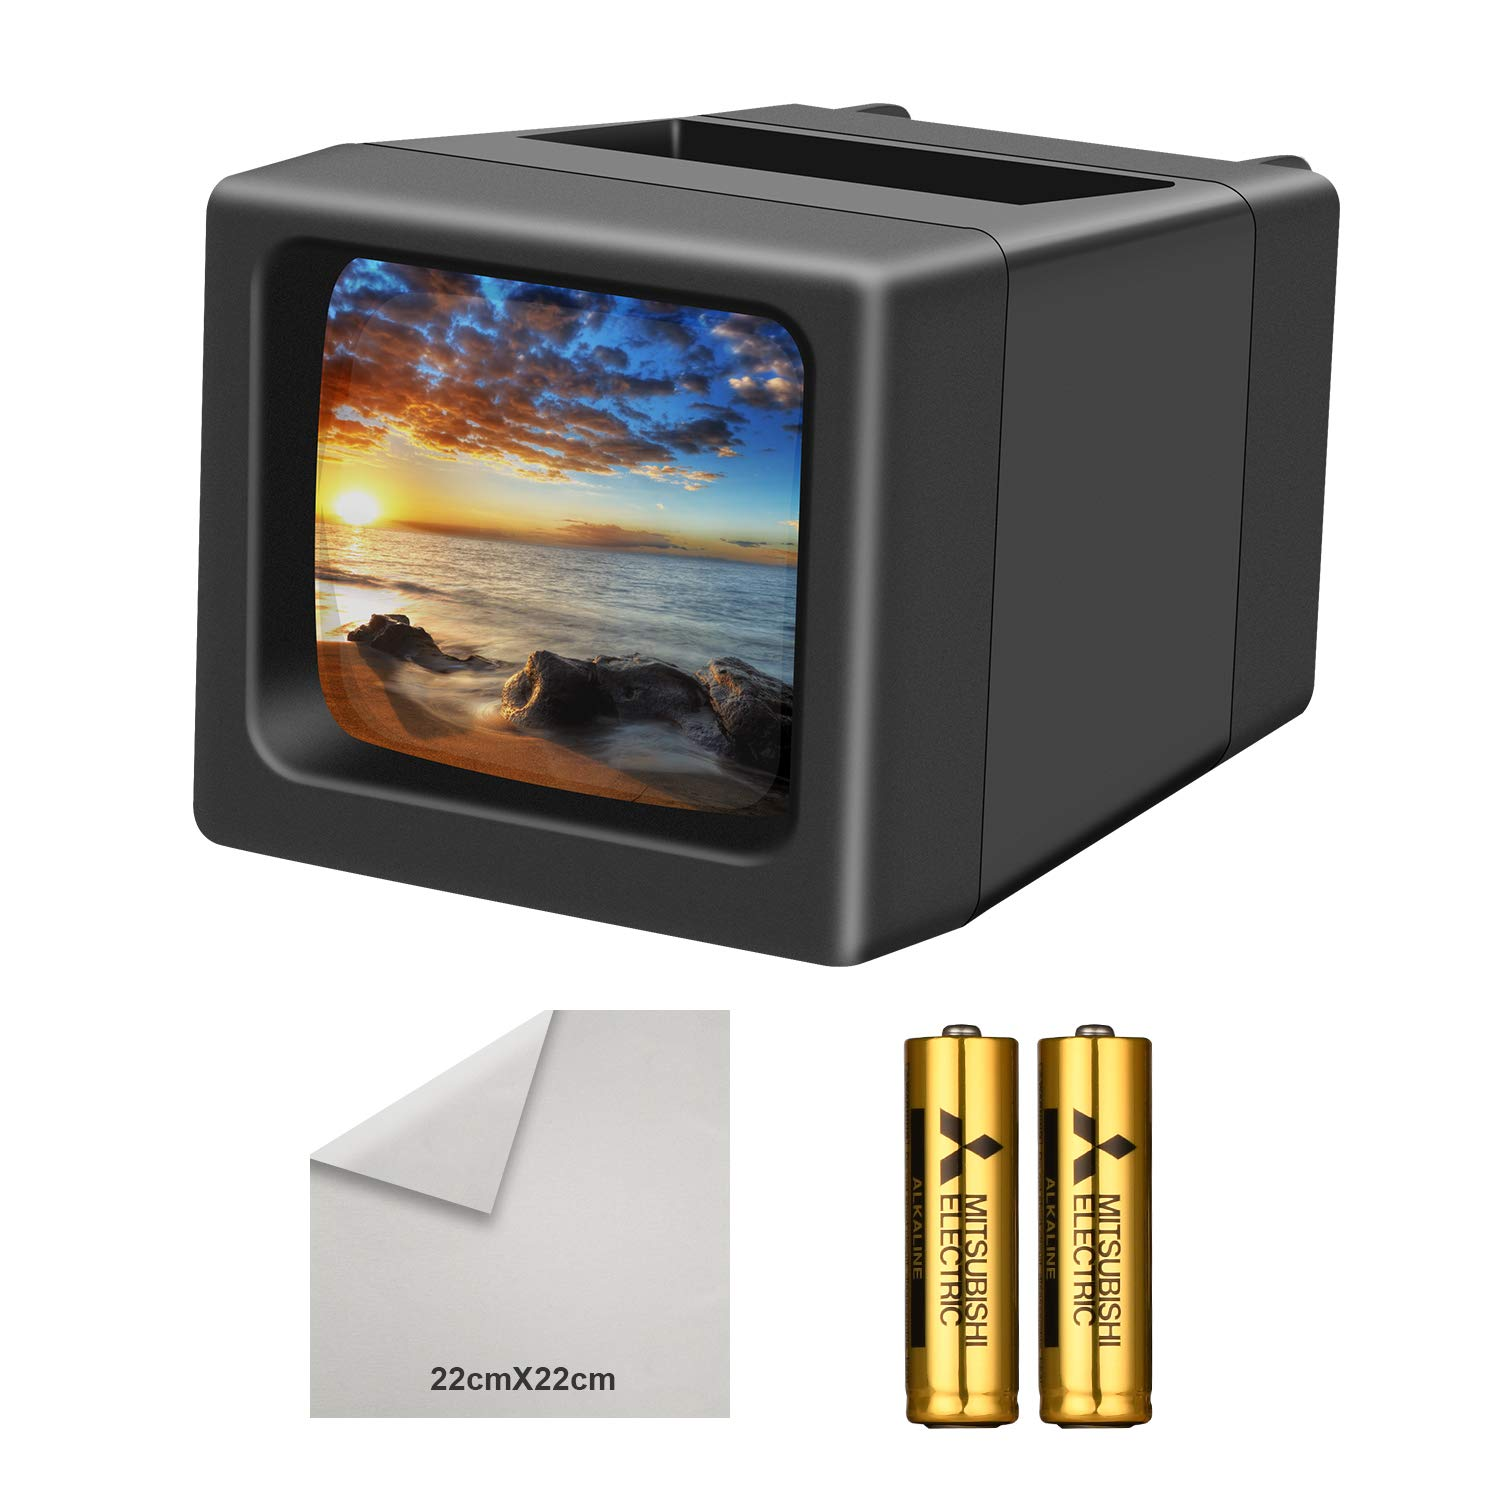 LED Lighted Illuminated 35mm Slide Viewer(2AA Batteries Included) by Rybozen